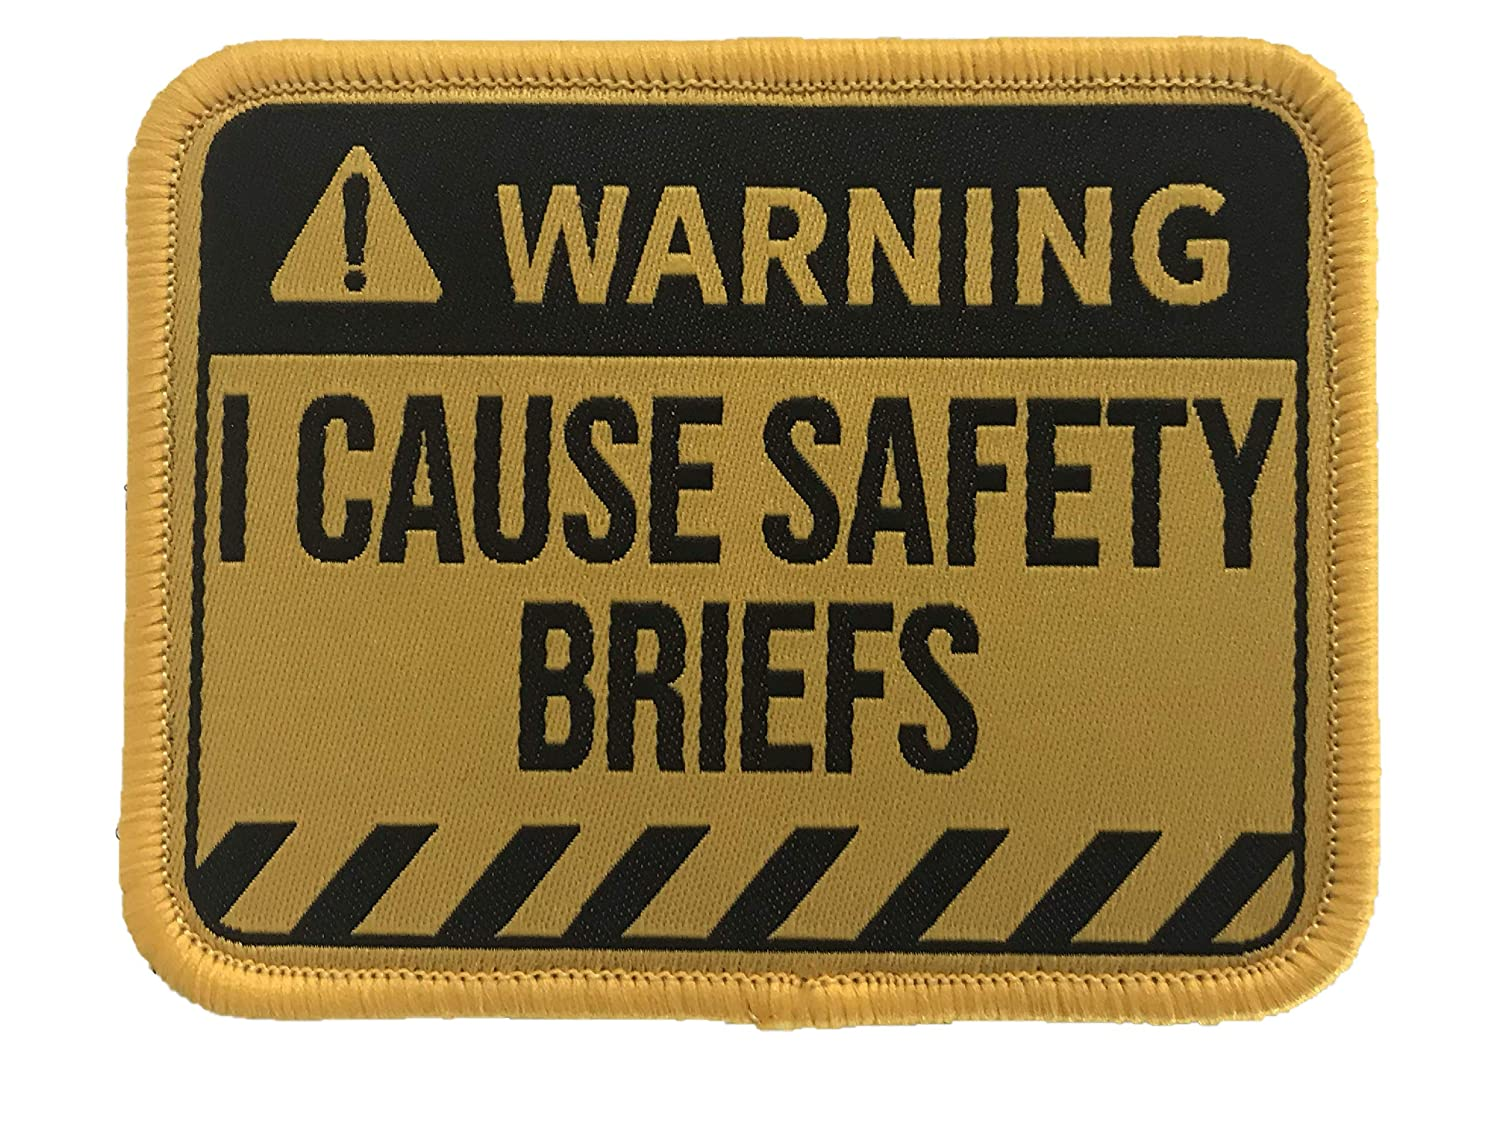 Warning Embroidered Morale Patch I Cause Safety Briefs